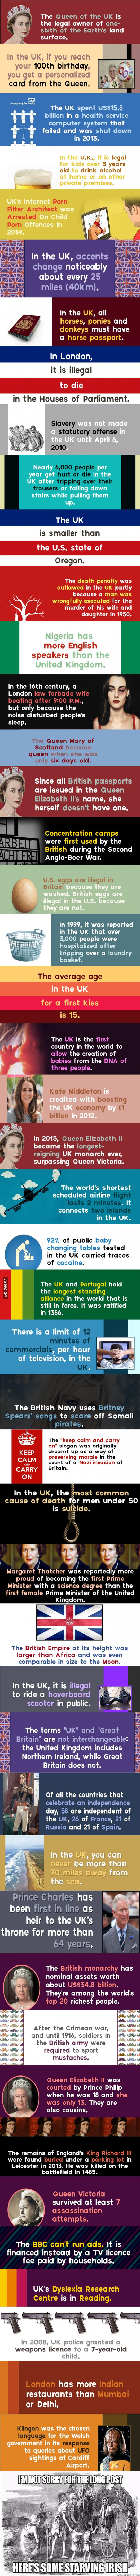 47 Fun Facts About The UK